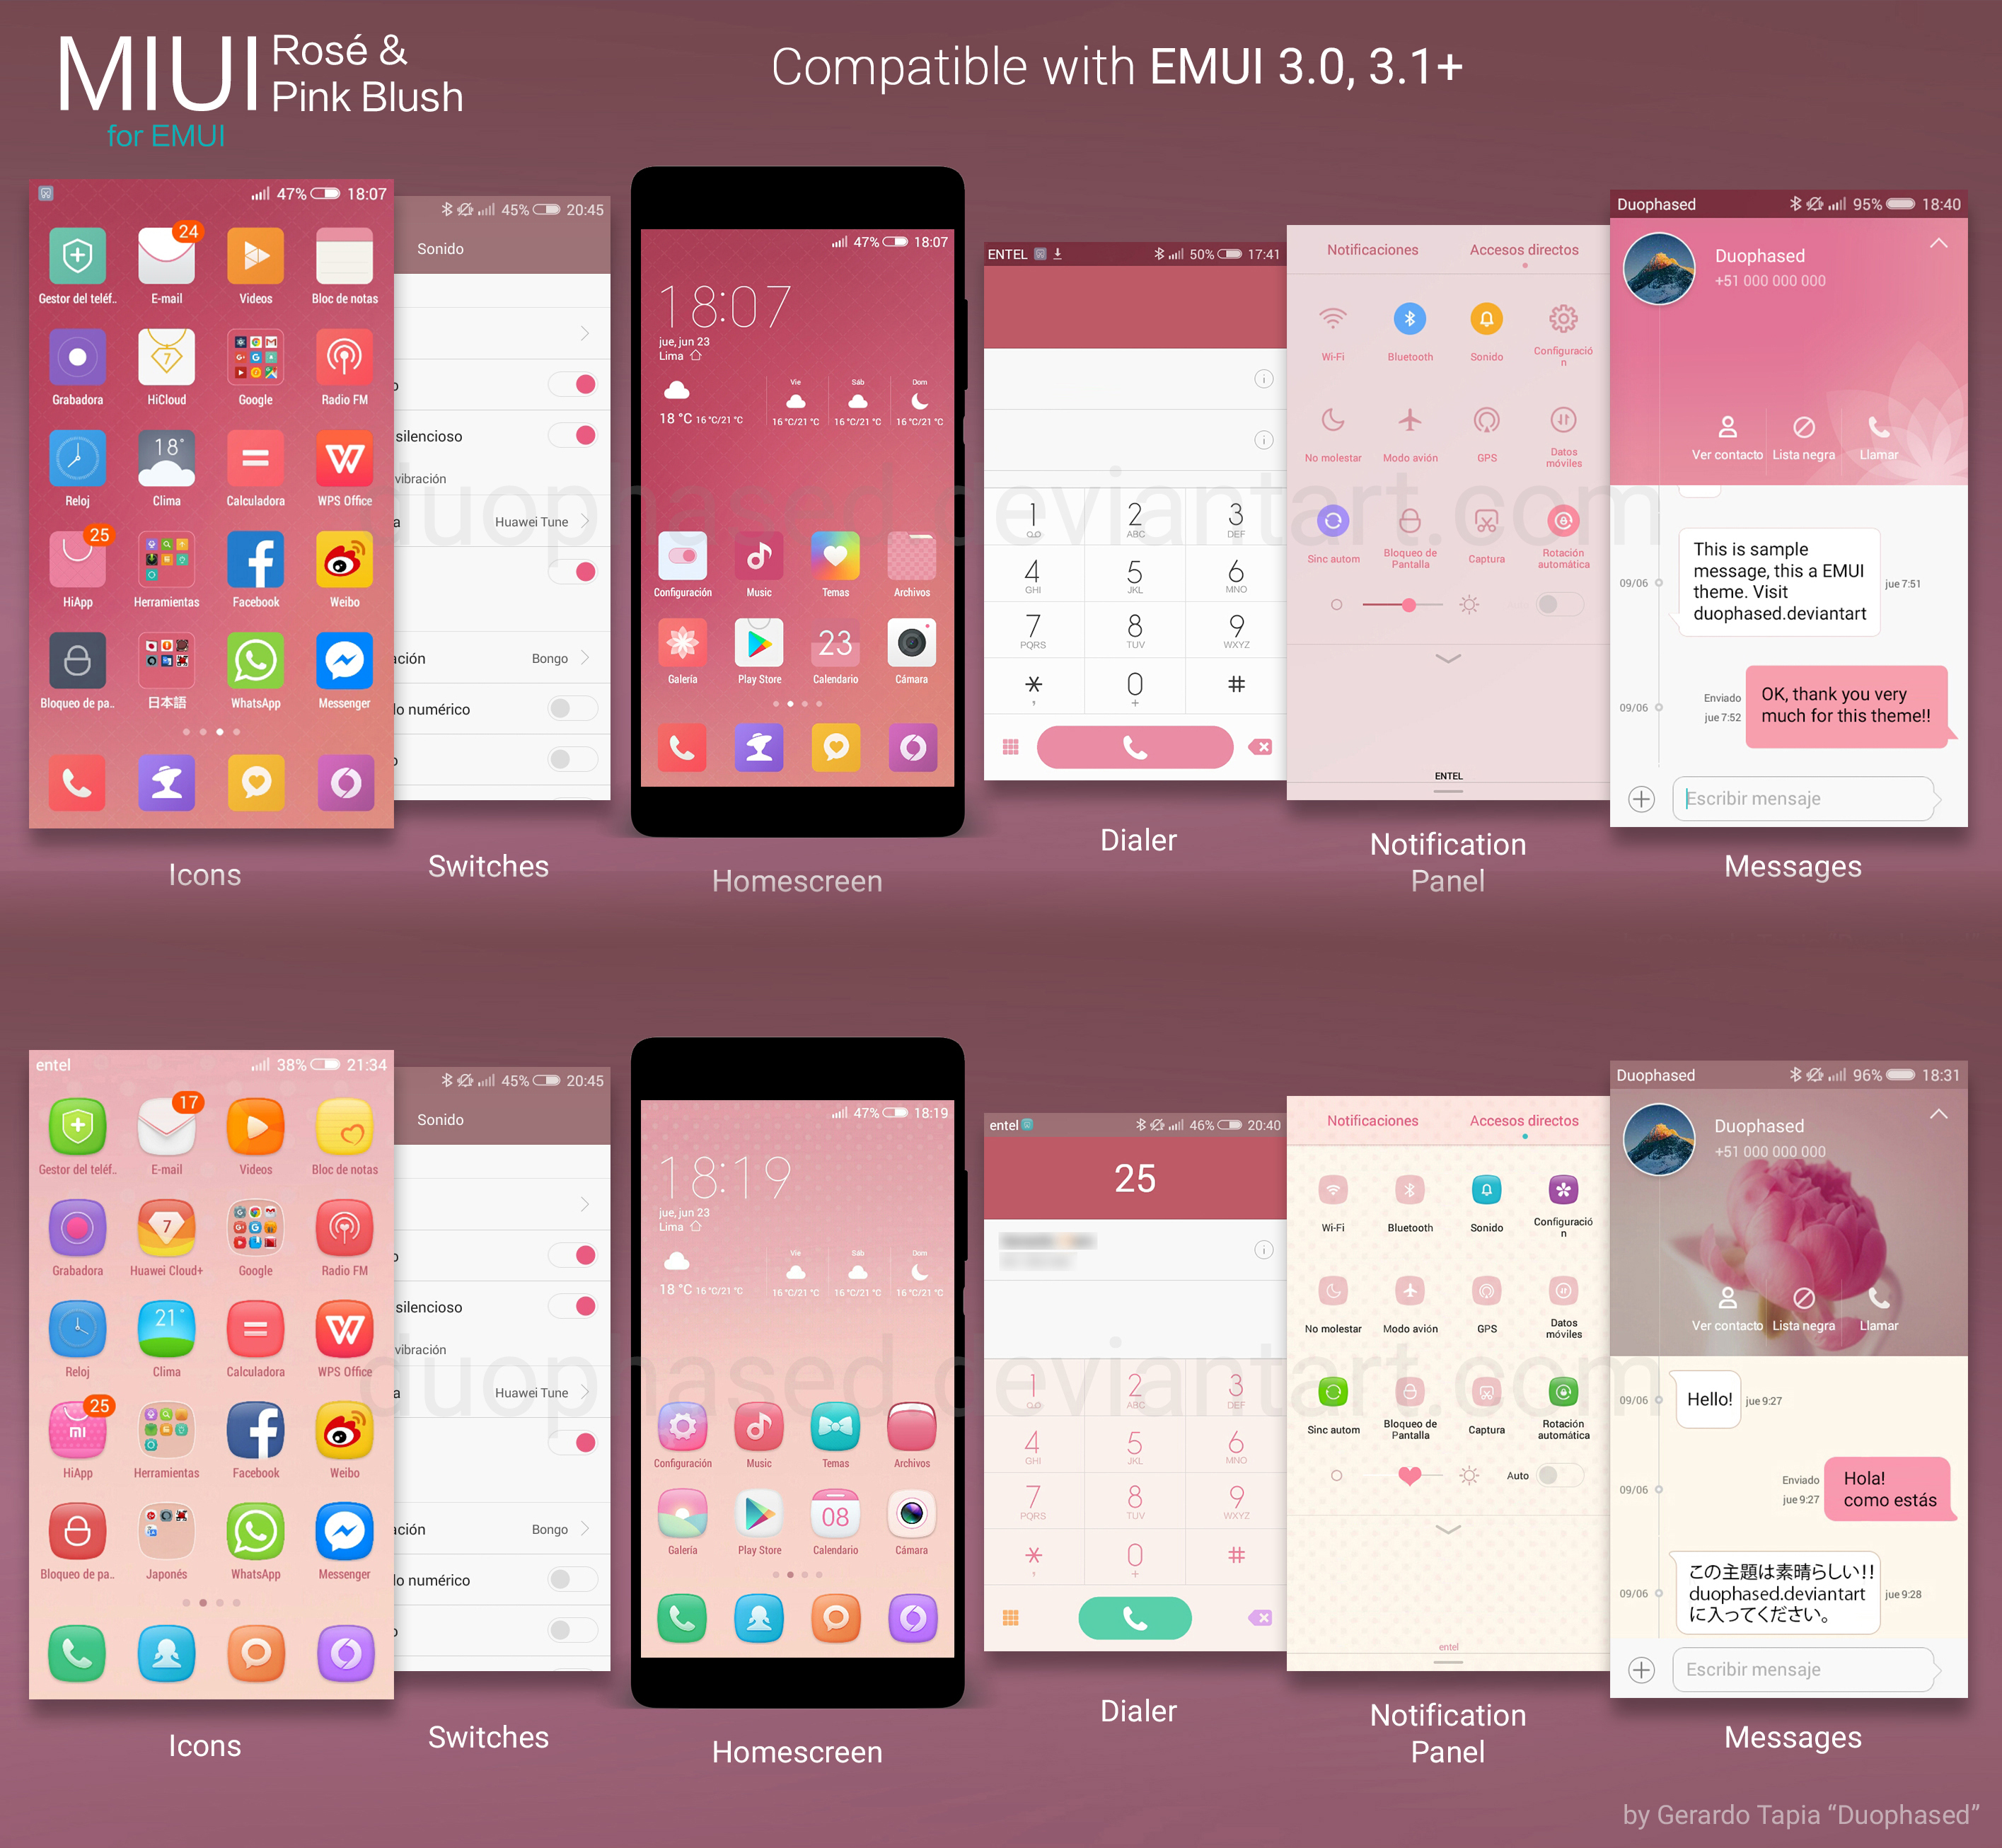 Rose and Pink Blush MIUI themes for EMUI by Duophased on DeviantArt